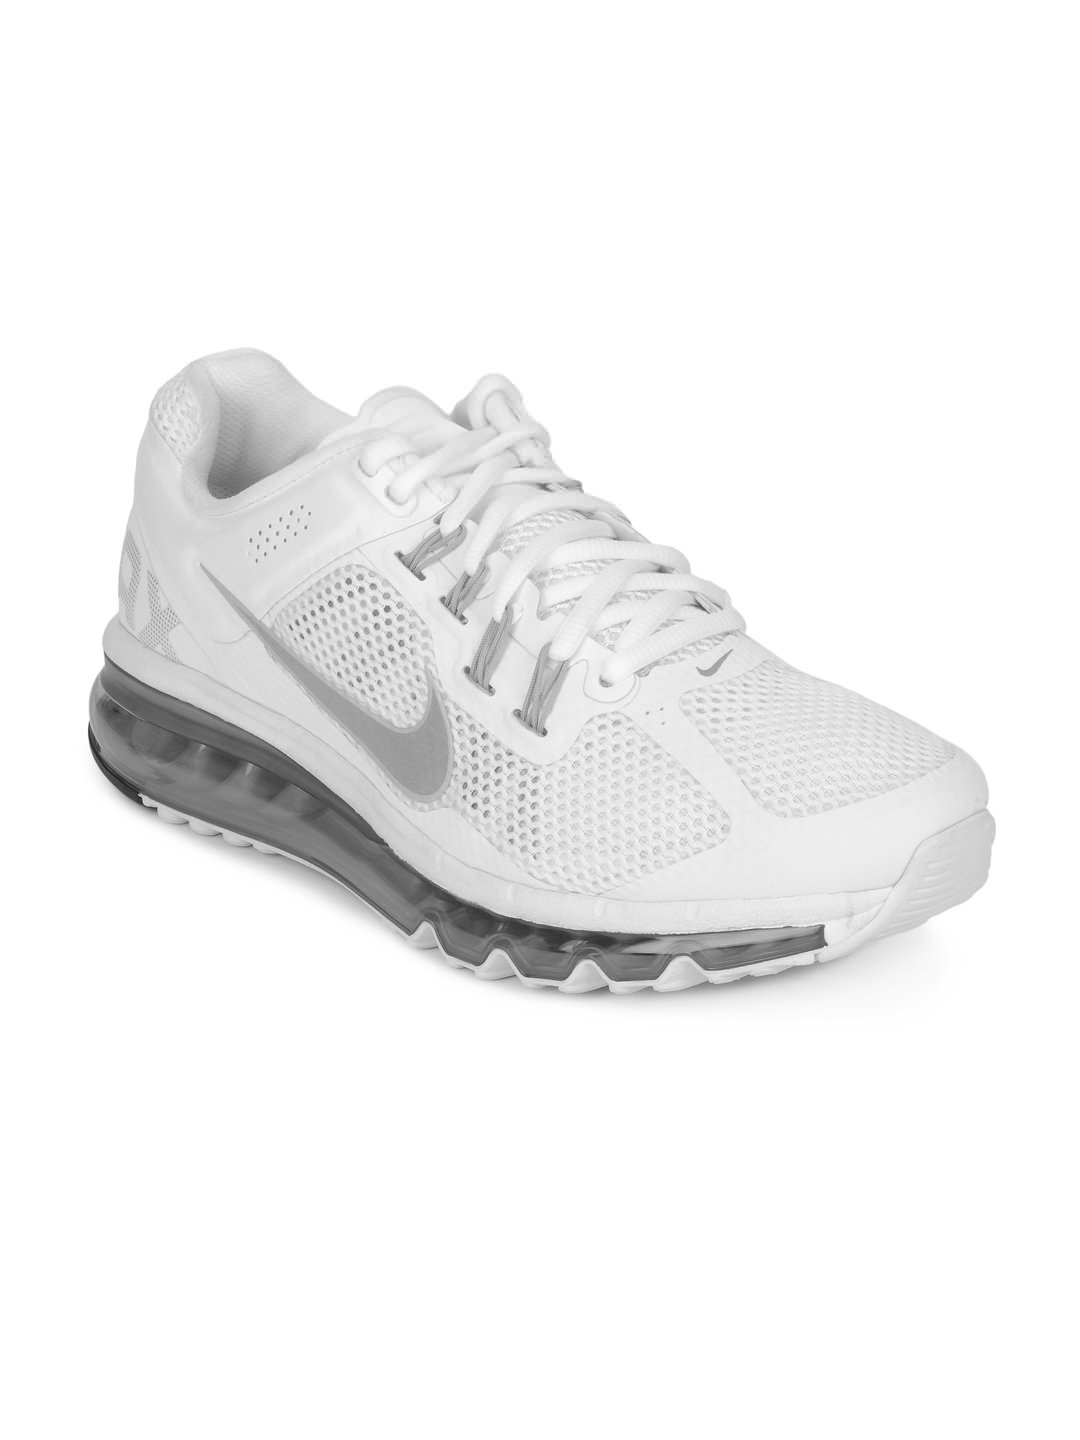 fashion new nike shoes for boys in 2013